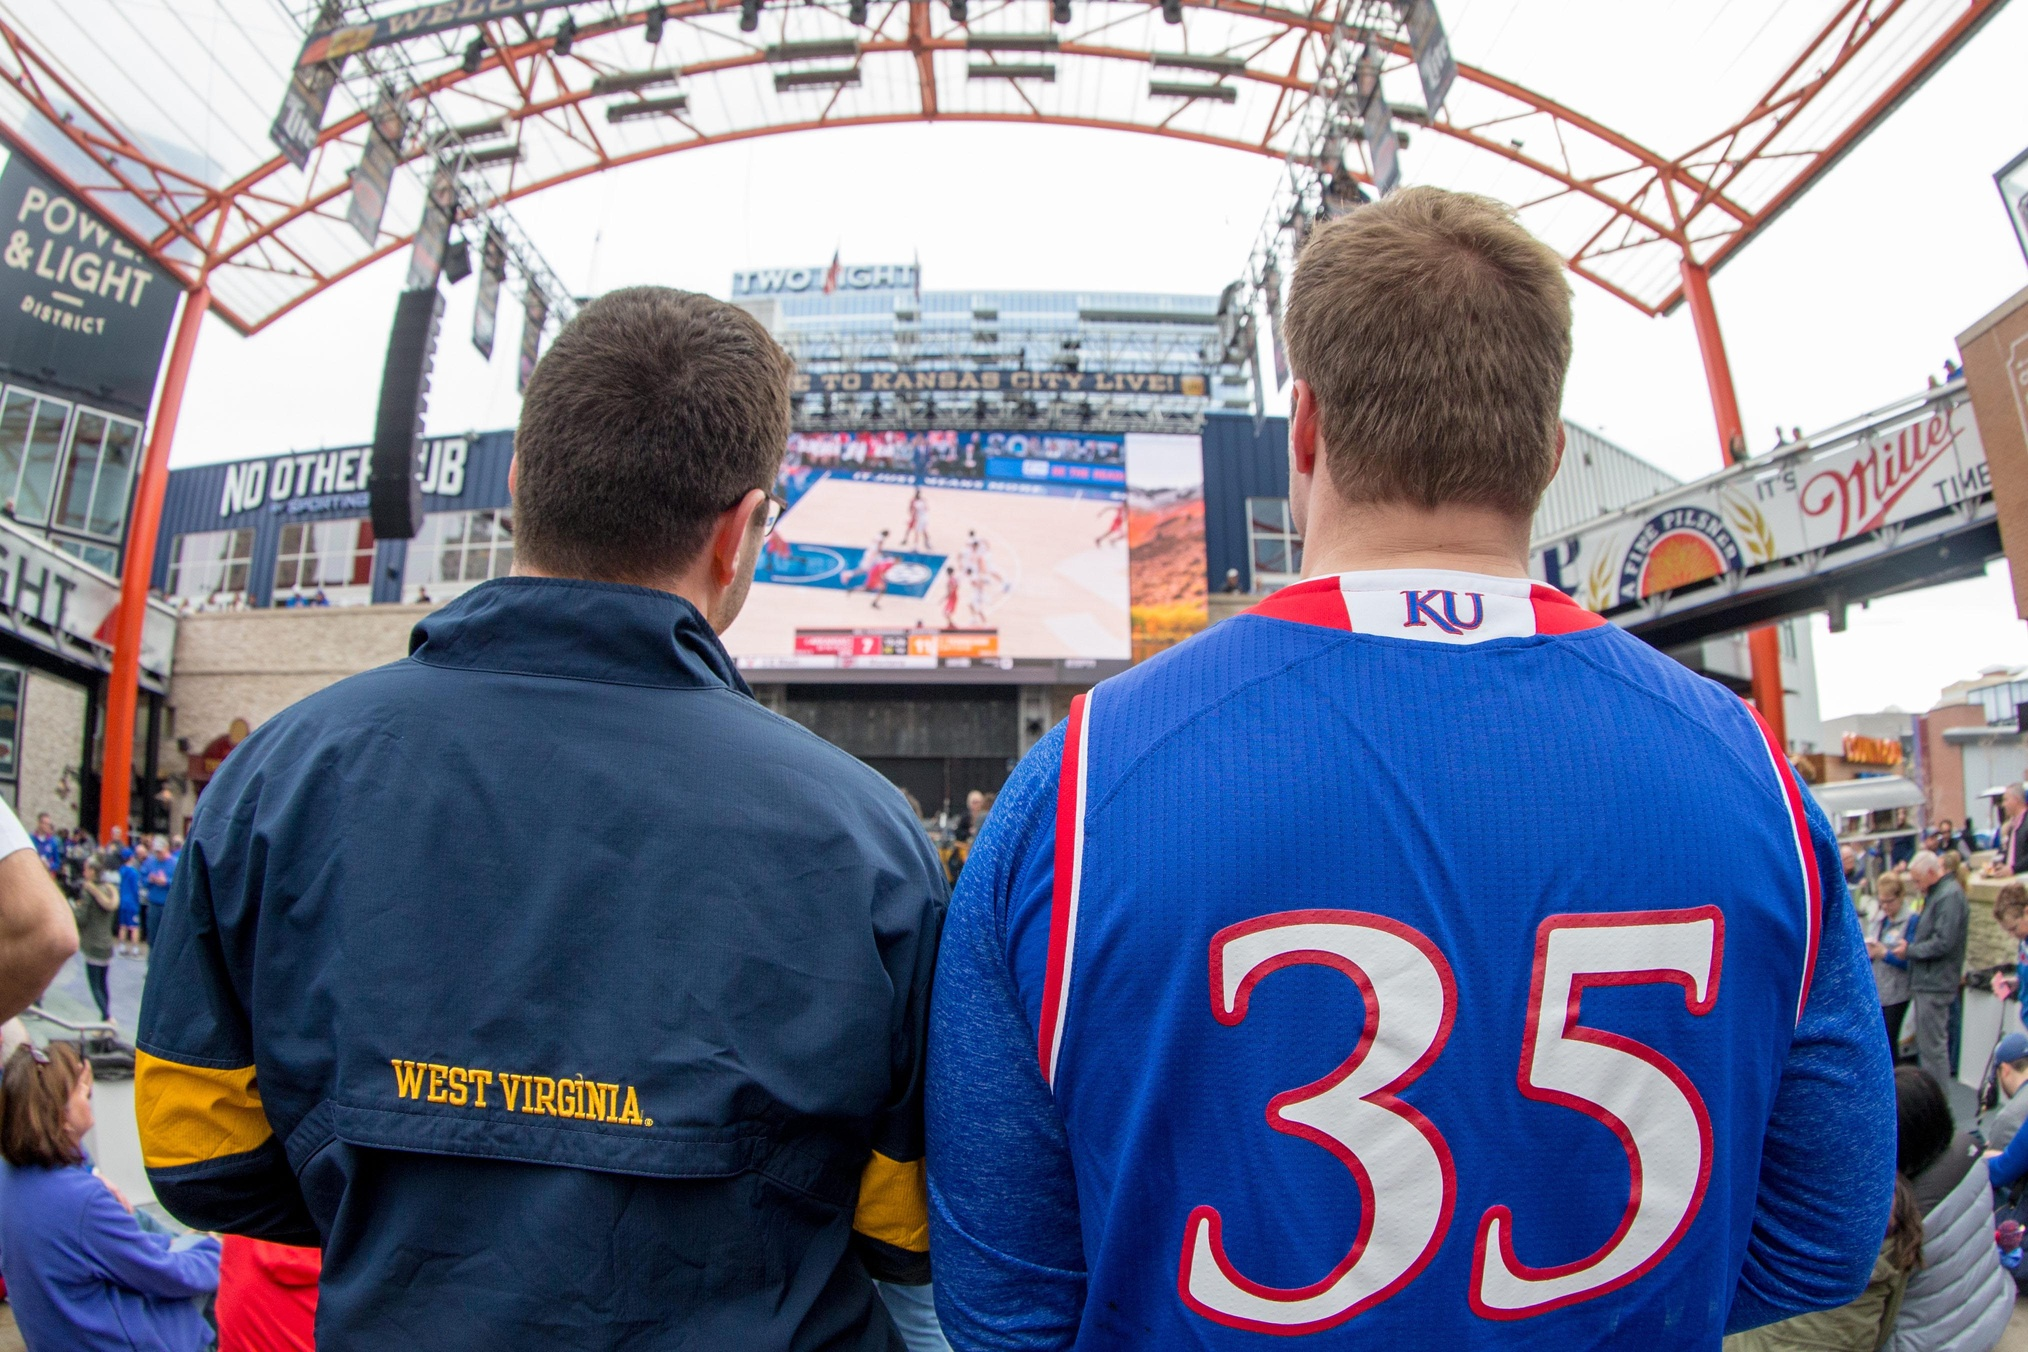 WVMetroNews - Basketball fans watch tournament games on the